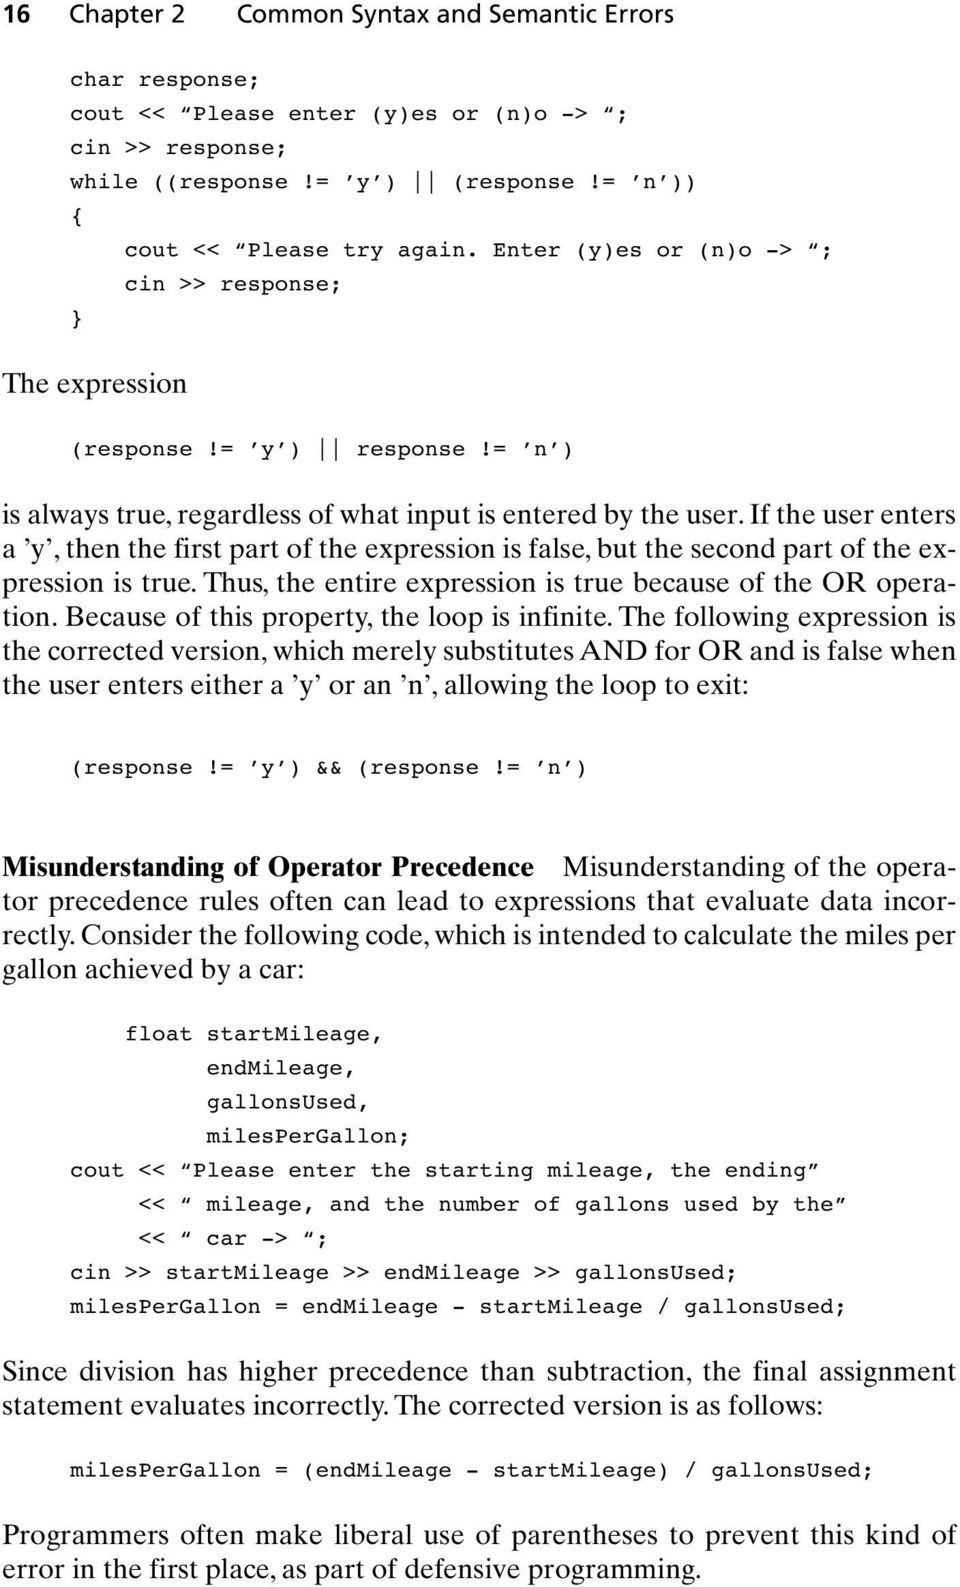 If the user enters a y, then the first part of the expression is false, but the second part of the expression is true. Thus, the entire expression is true because of the OR operation.